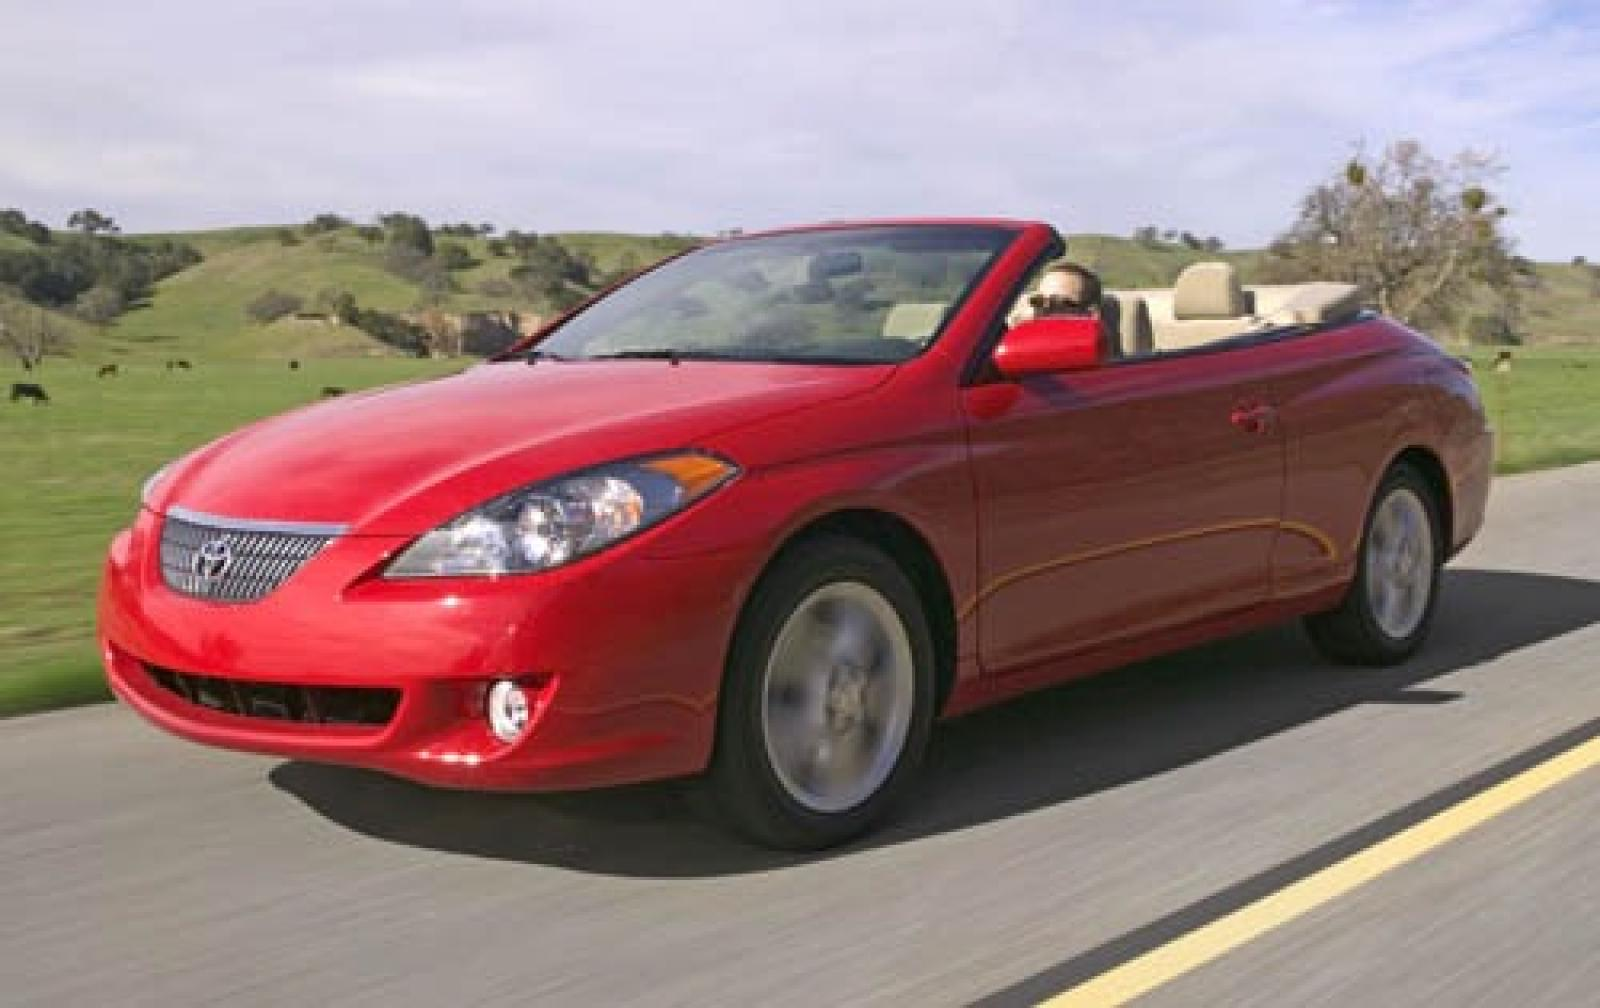 Toyota Solara Sports Car